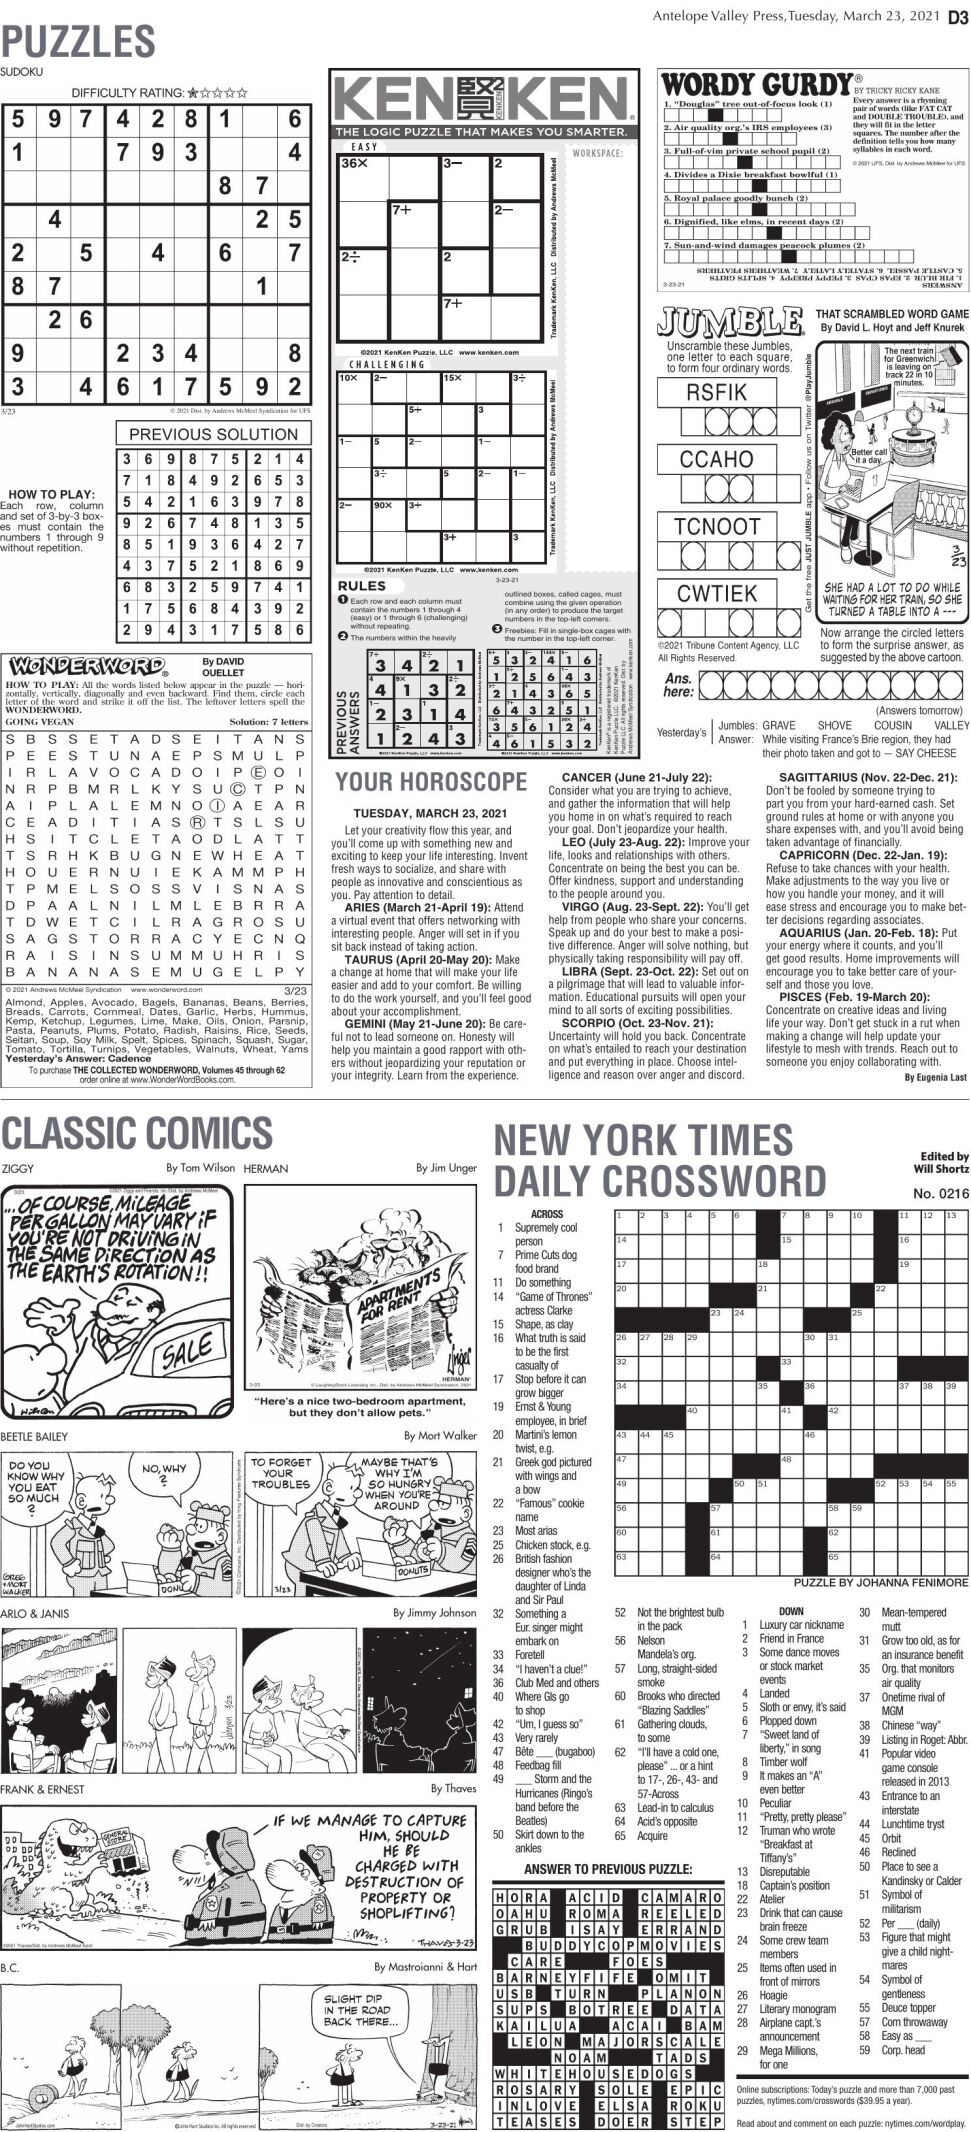 Puzzles, March 23, 2021